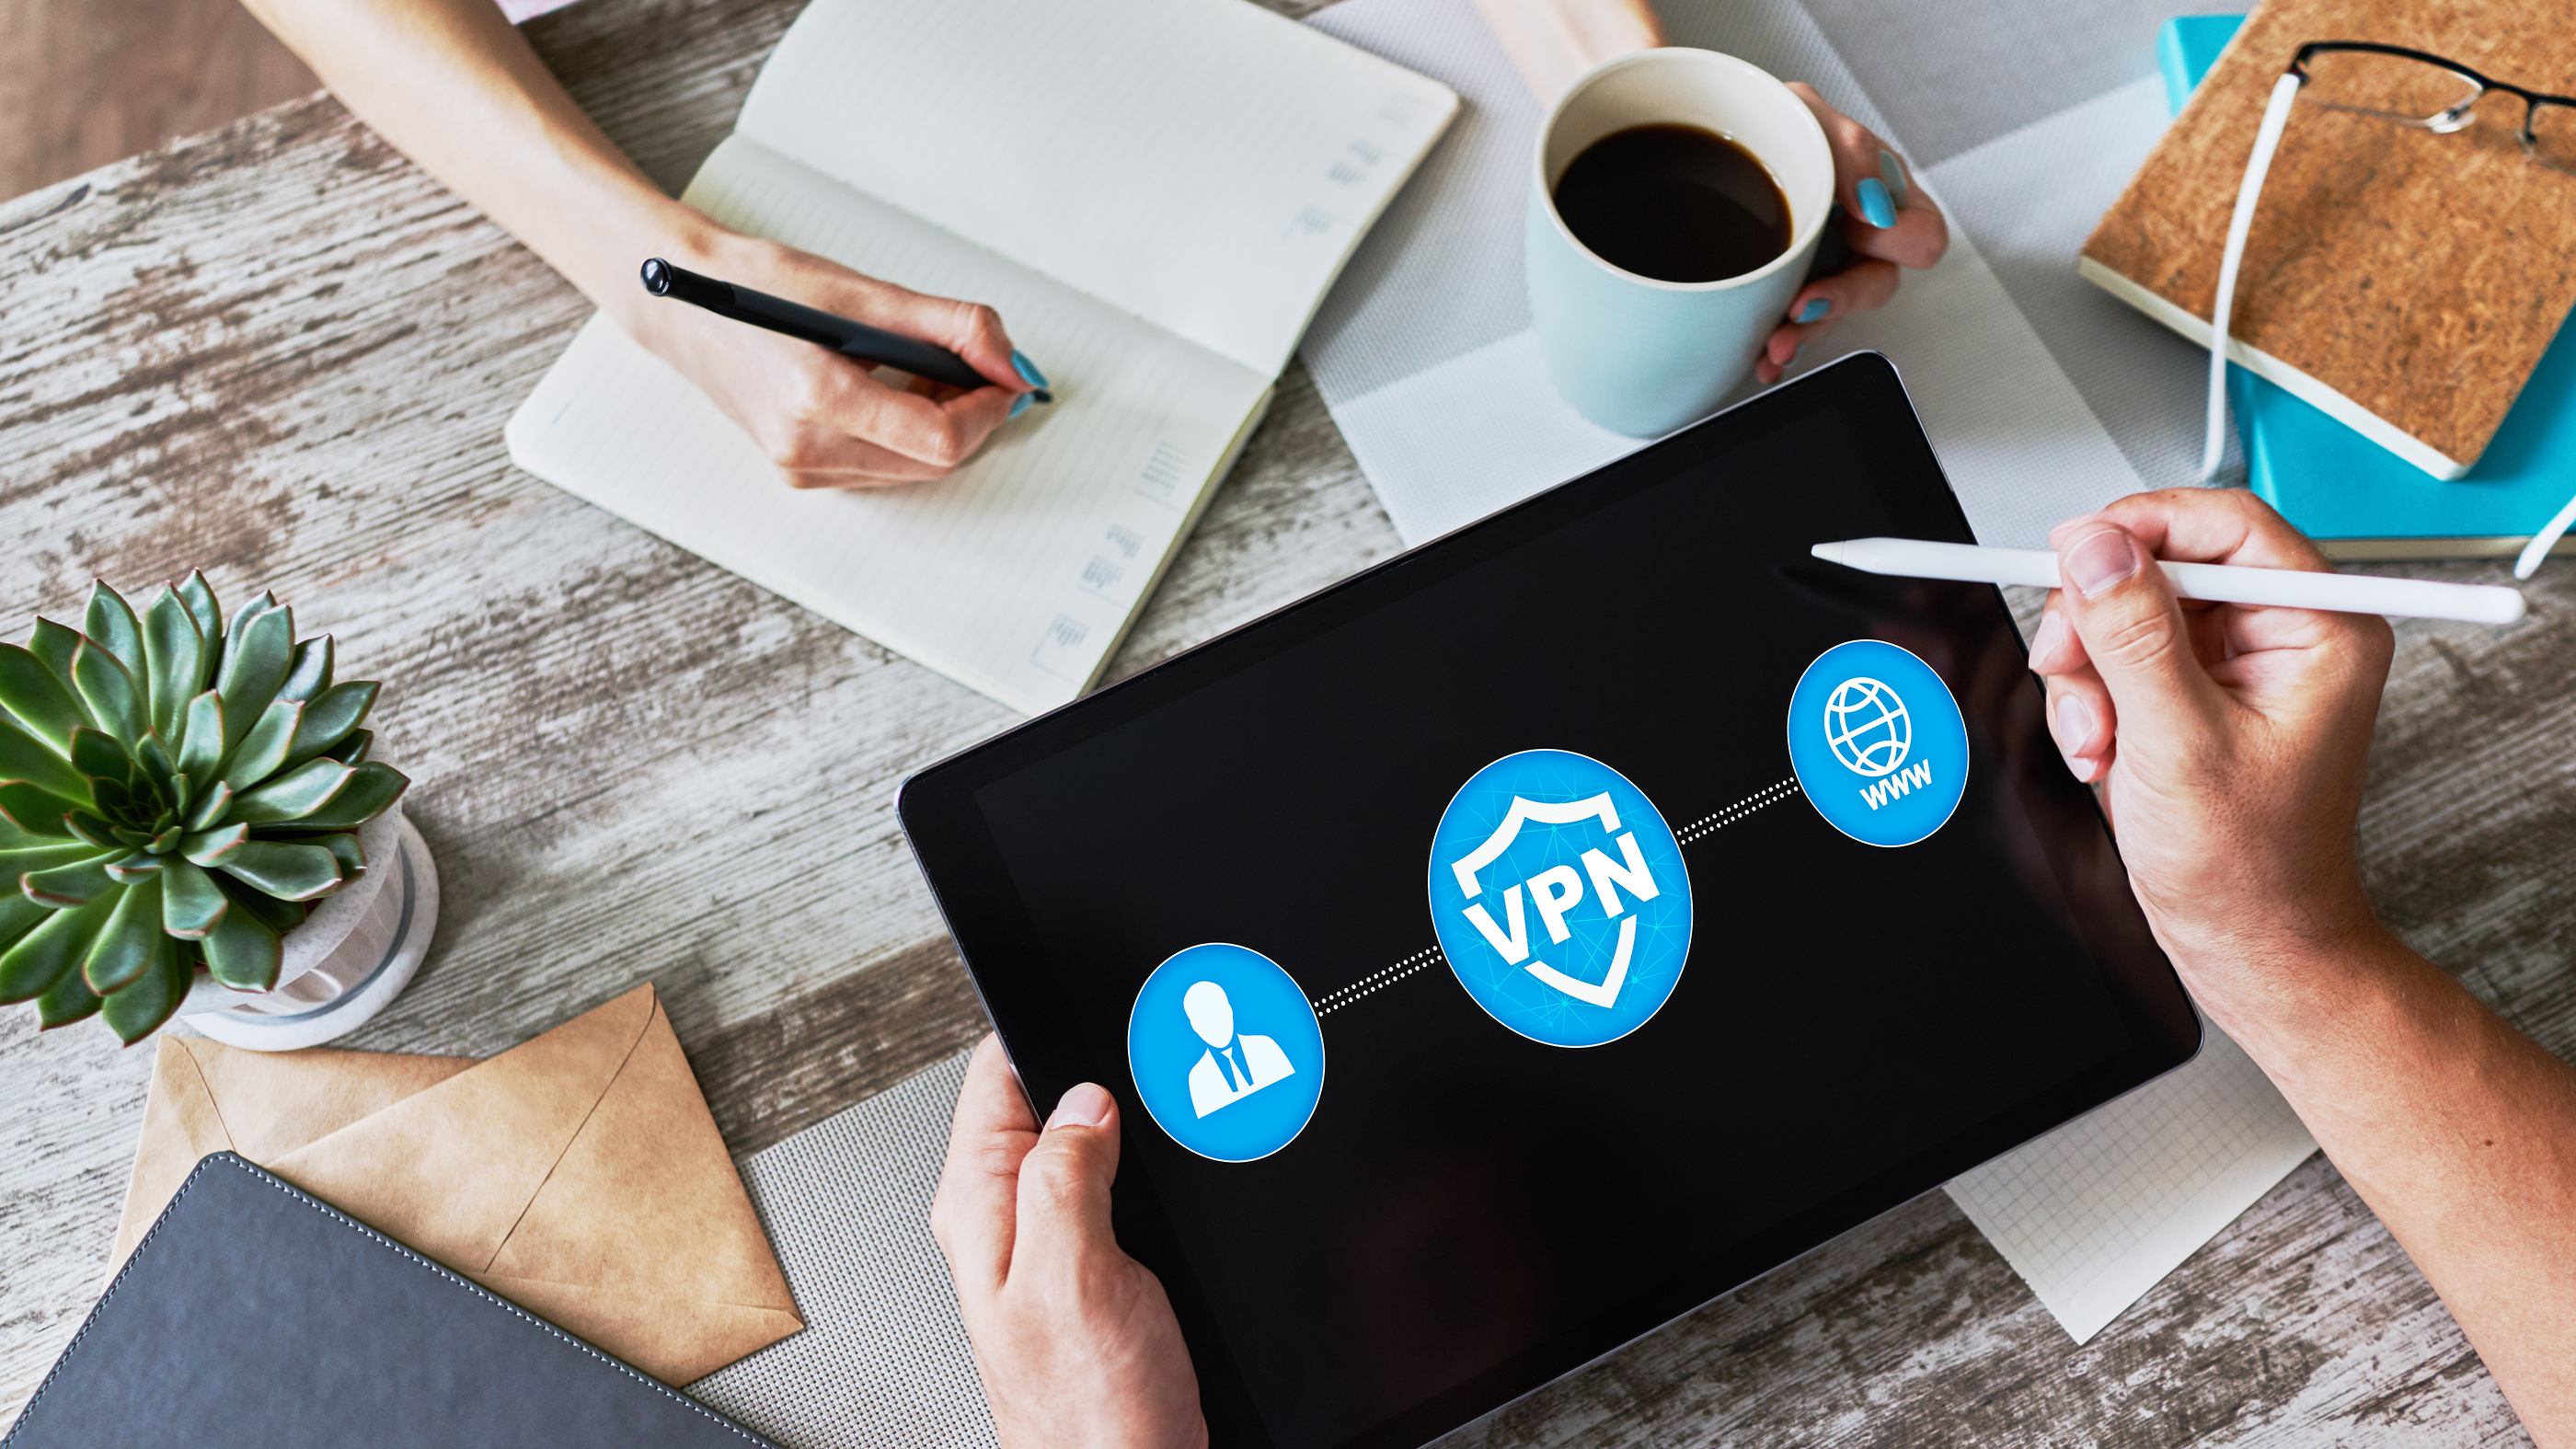 6 Ways Using a Business VPN Can Keep Your Network More Secure